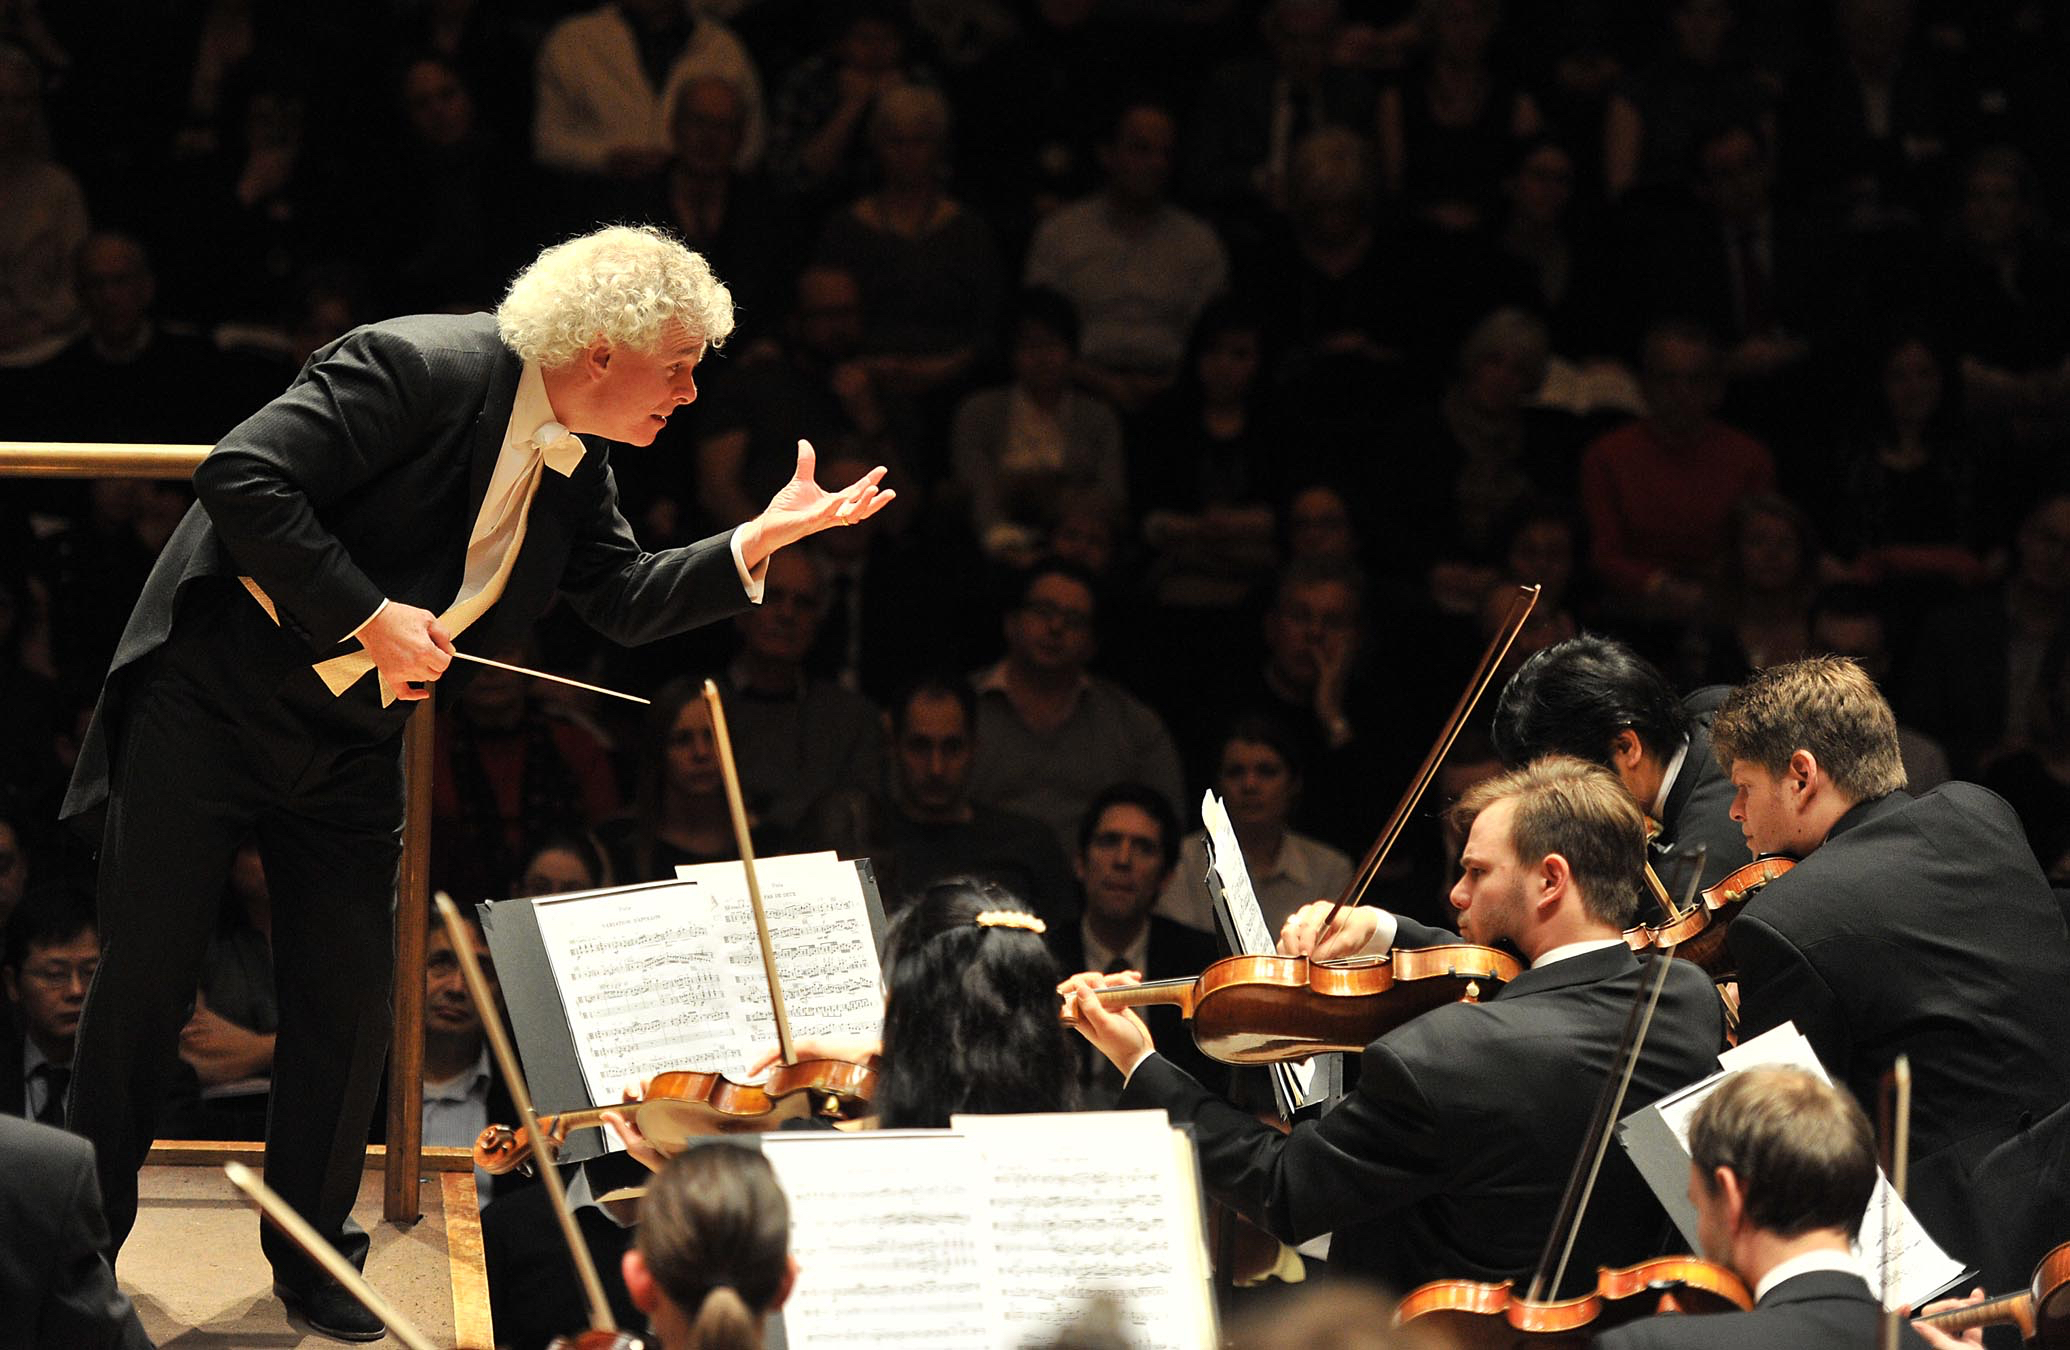 Berliner Philharmoniker and Simon Rattle perform at the Barbican on 21st February 2011. Photographer: Mark Allan.